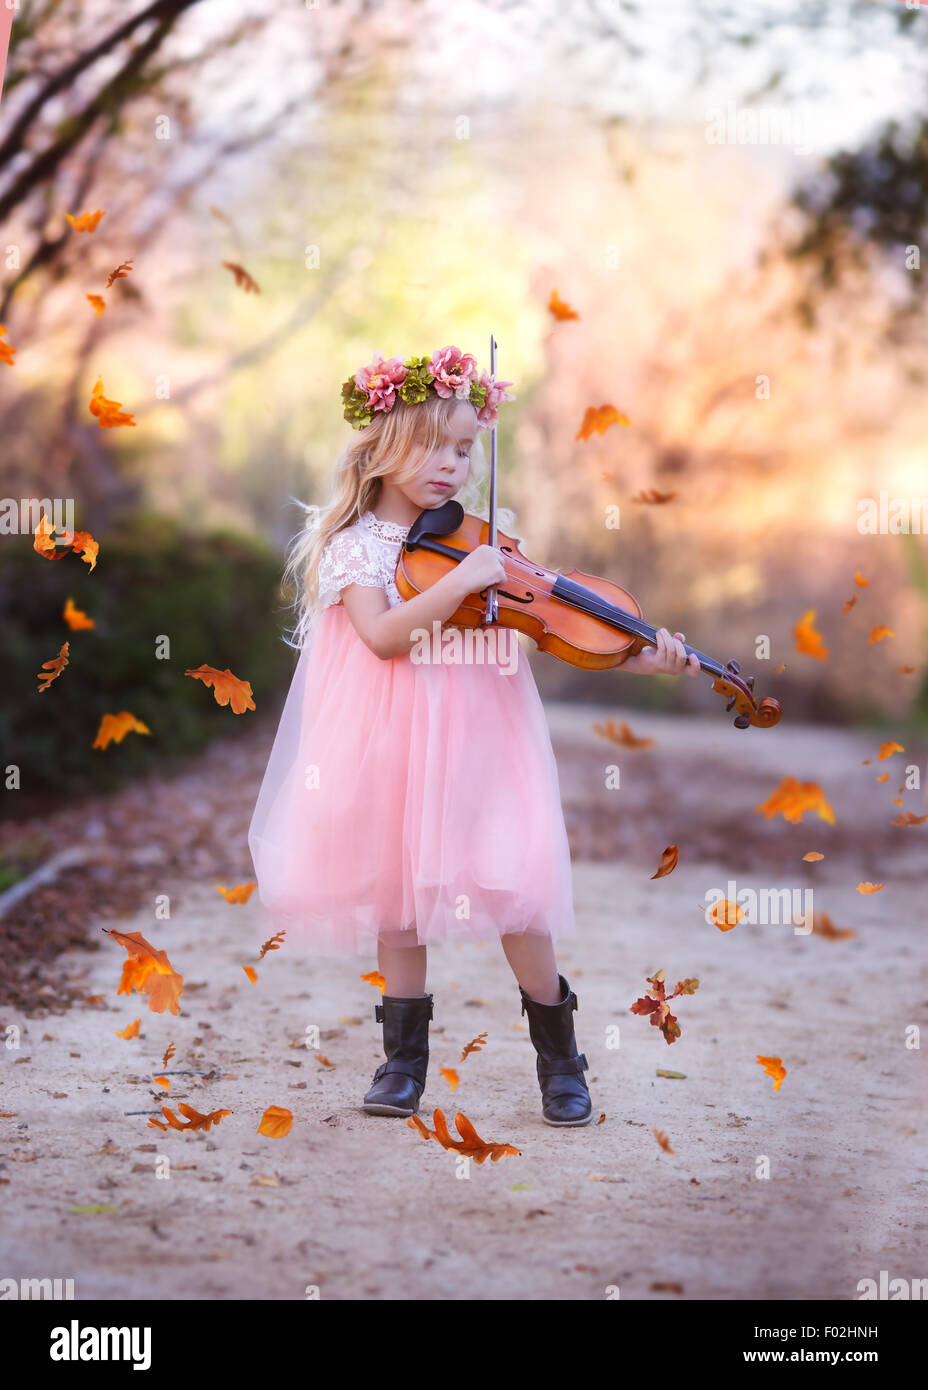 Girl standing in road playing the violin with leaves falling all around - Stock Image